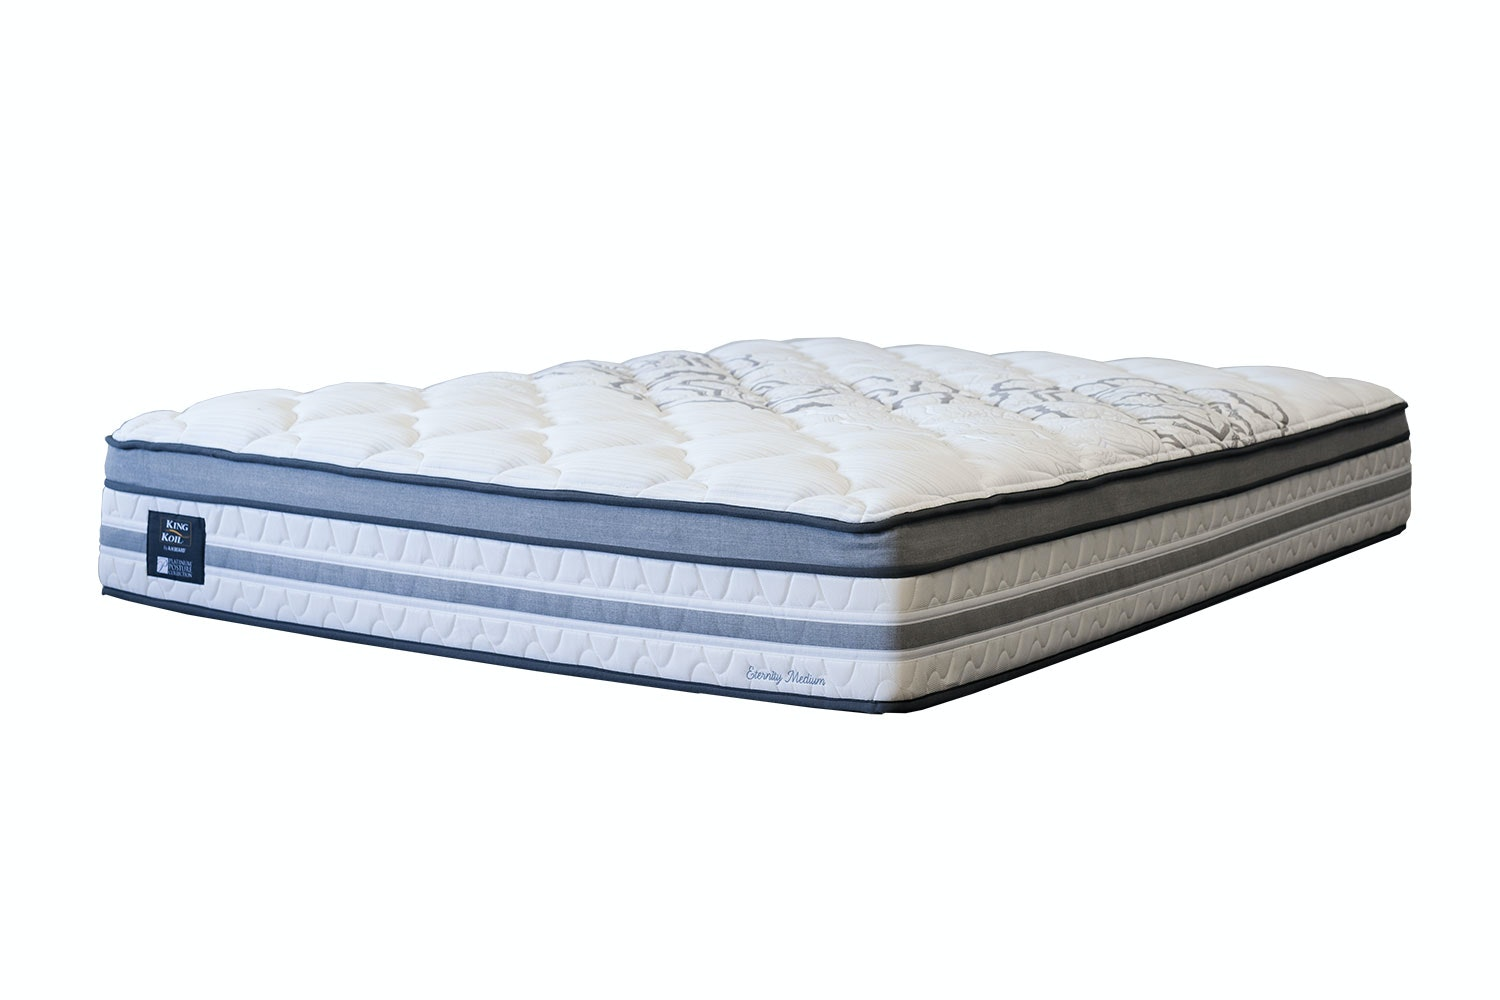 Eternity Medium Single Mattress by King Koil